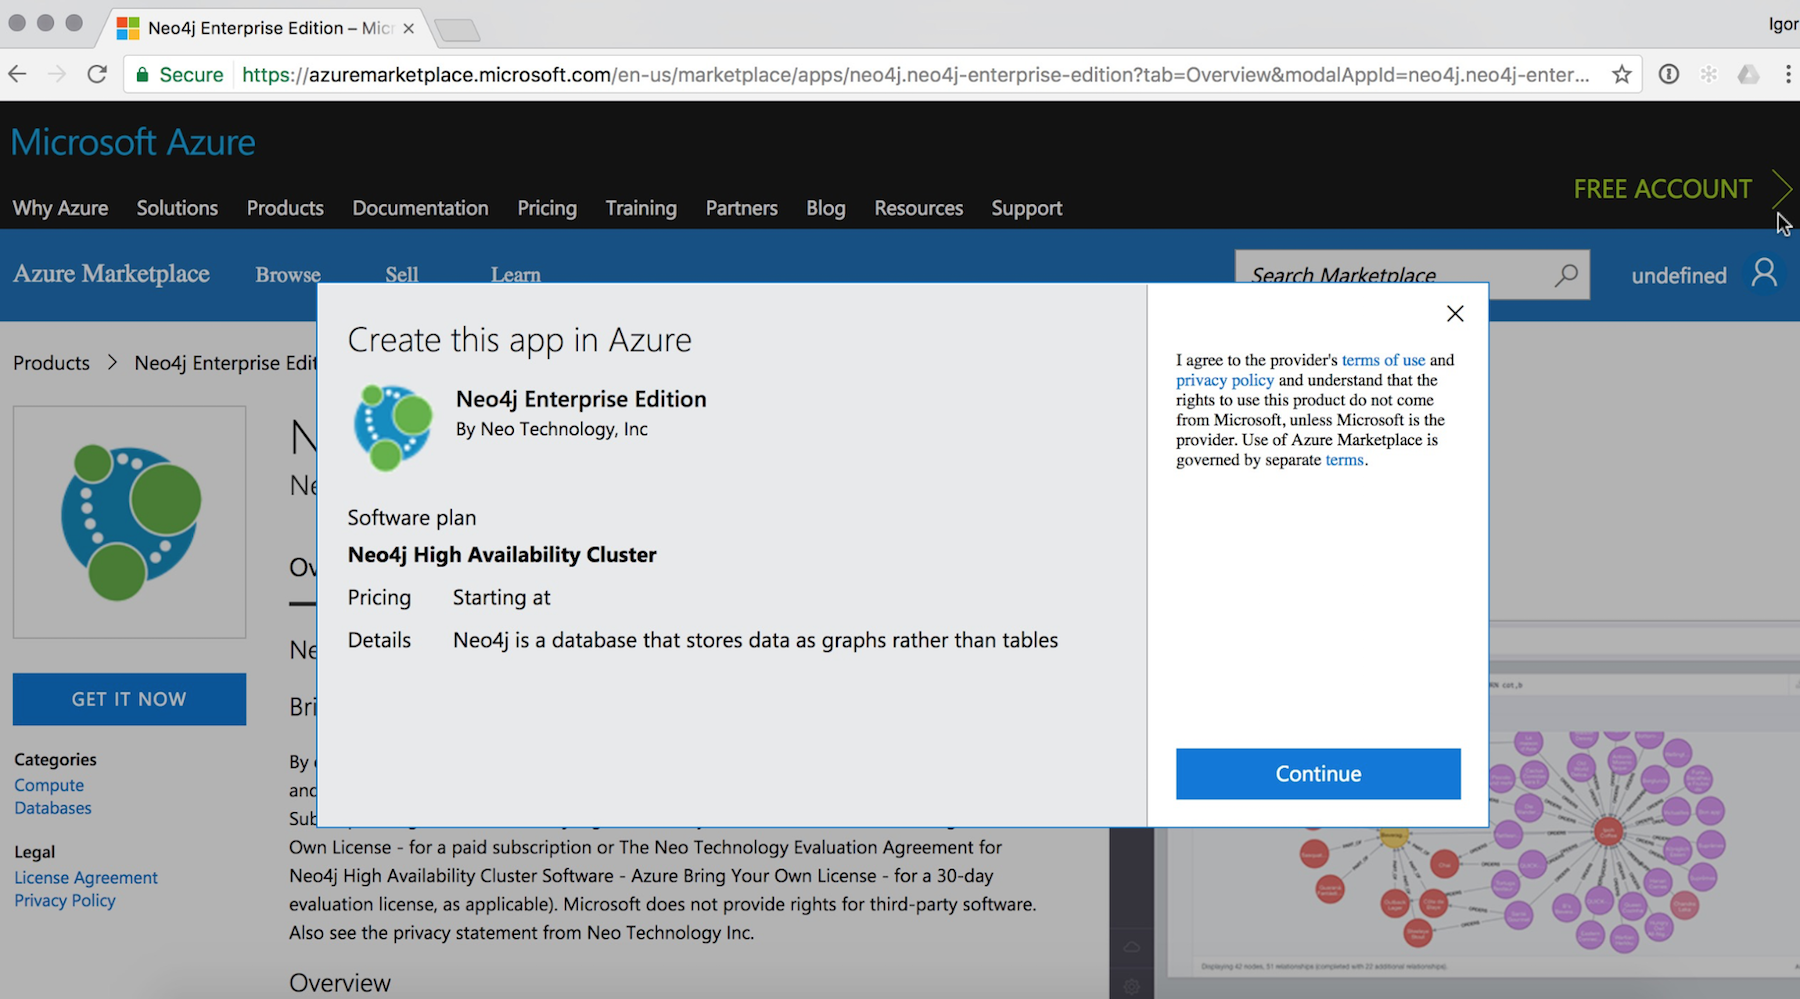 How to deploy neo4j on microsoft azure a step by step guide neo4j enterprise edition in the microsoft azure marketplace 1betcityfo Images